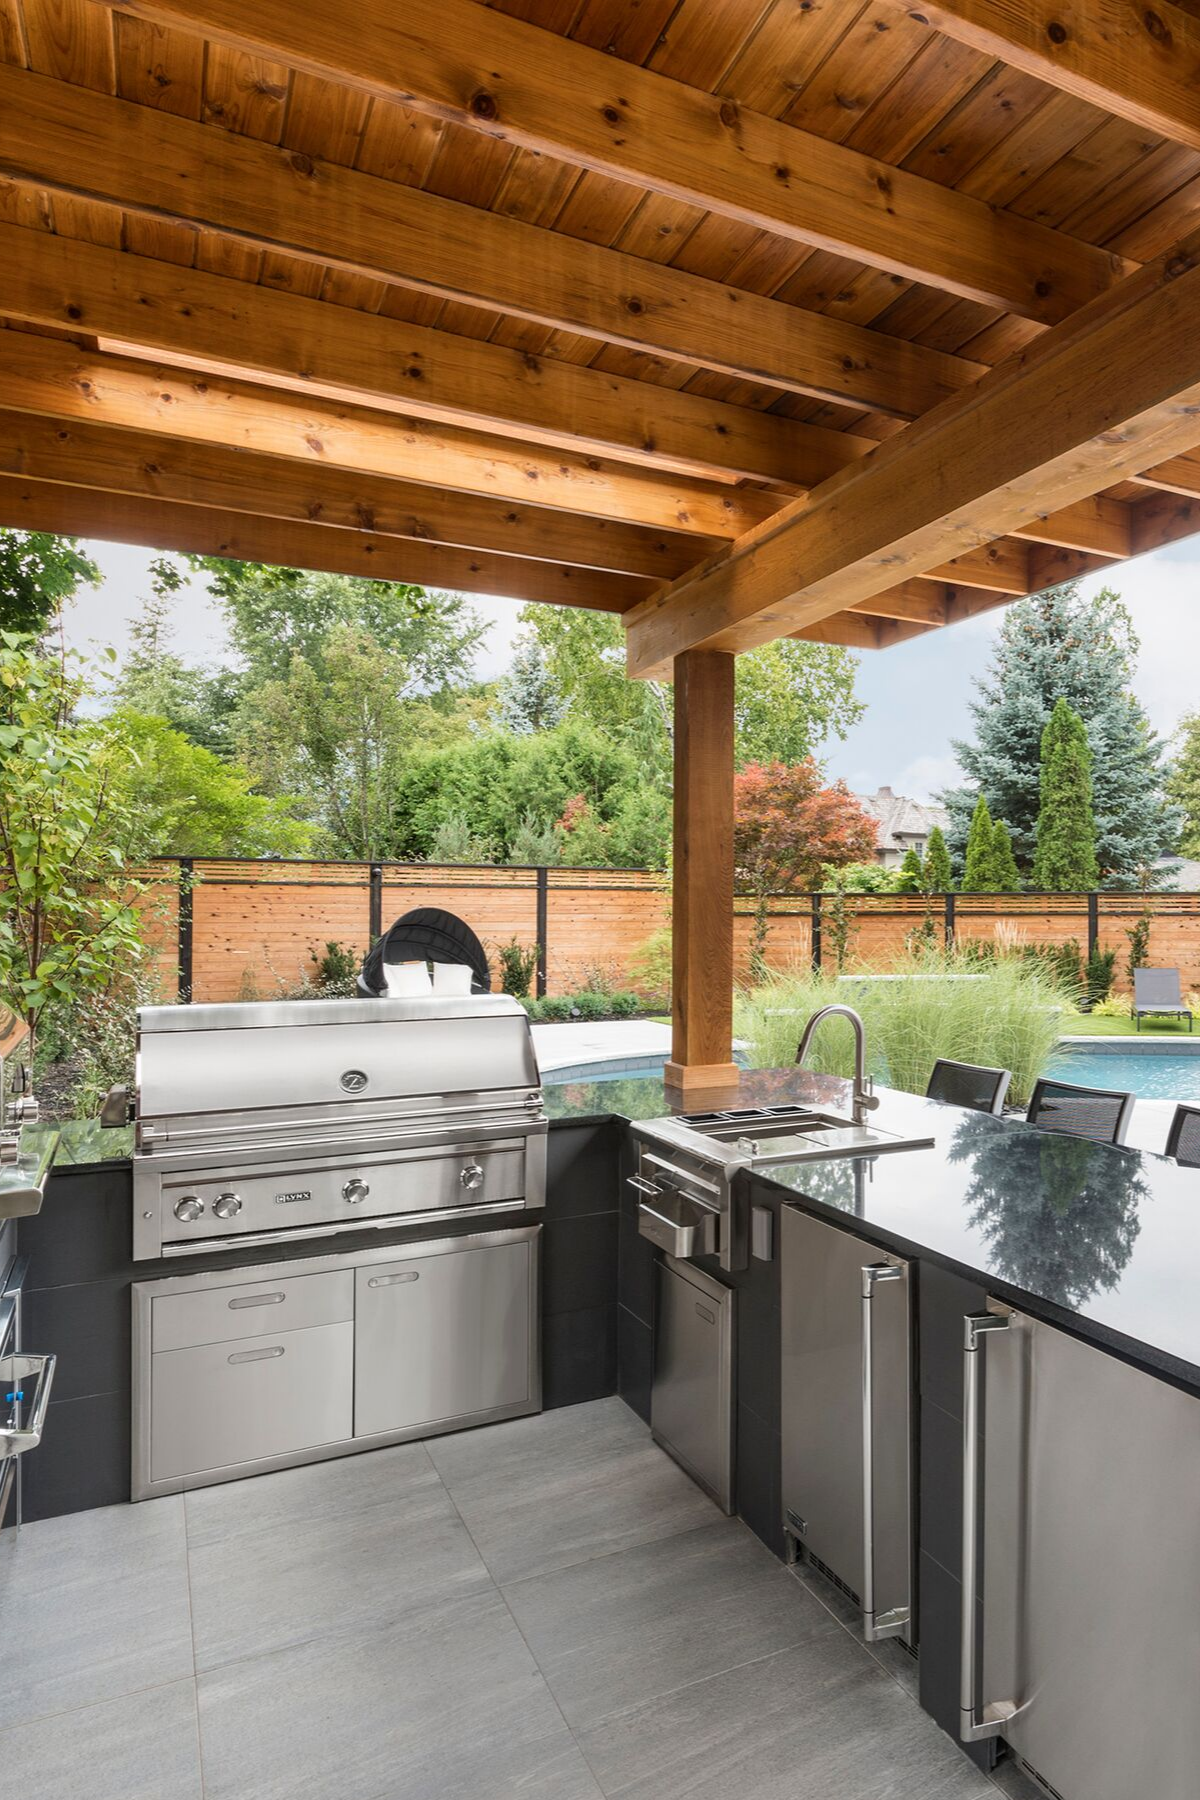 pin by pirch on outdoor outdoor kitchen island outdoor barbeque outdoor kitchen on outdoor kitchen island id=26567